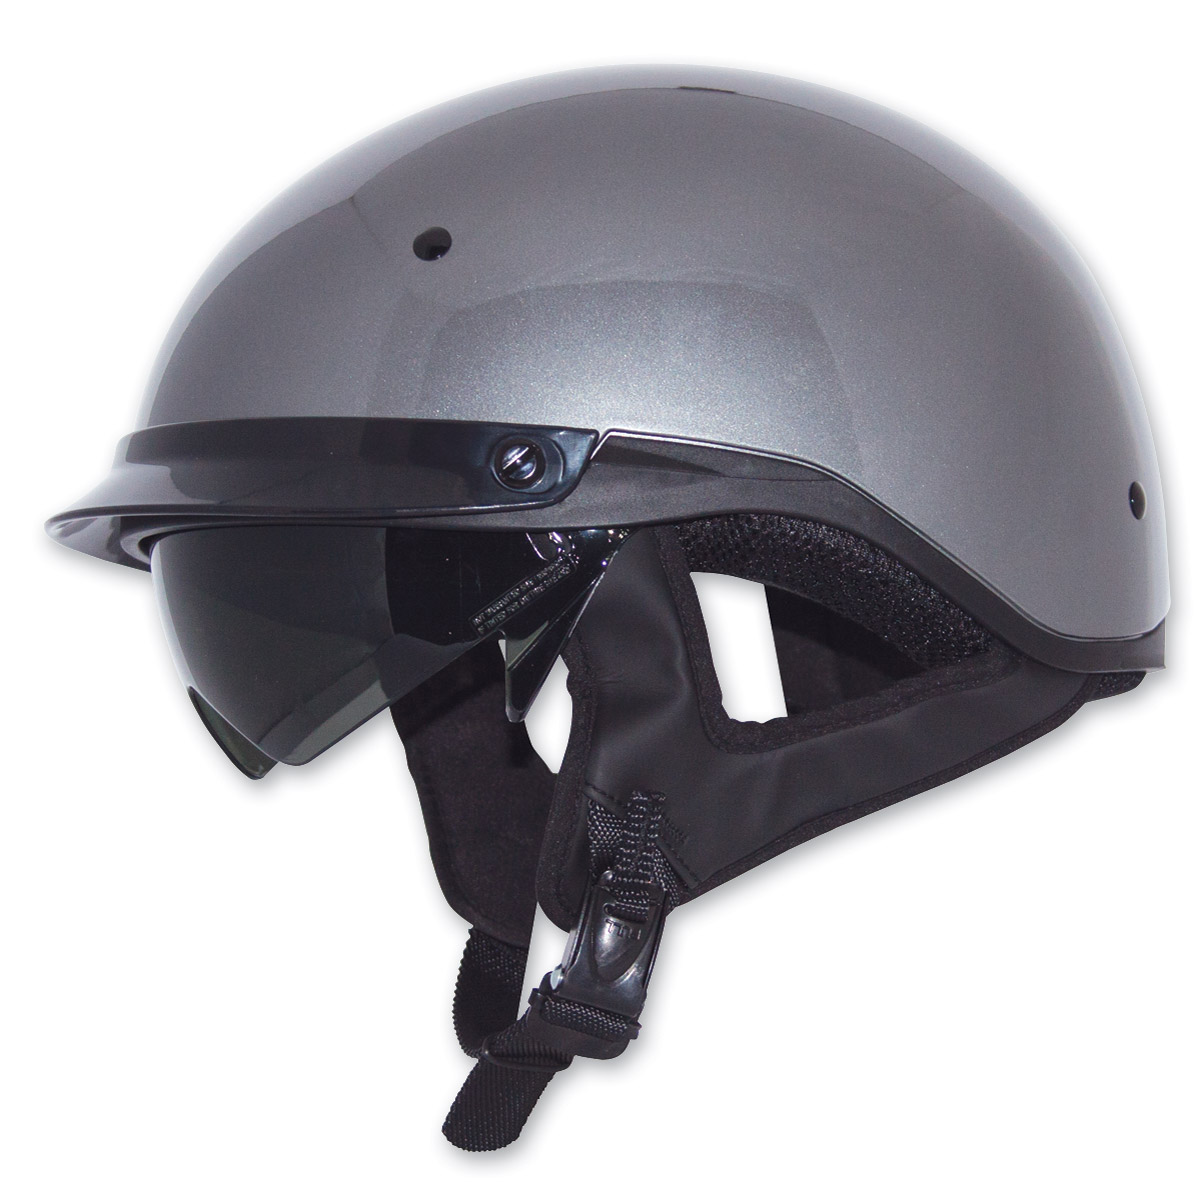 818 H351 Off-Road Motocross Helmet Black//Silver, Small H351 BLACK-SILVER S